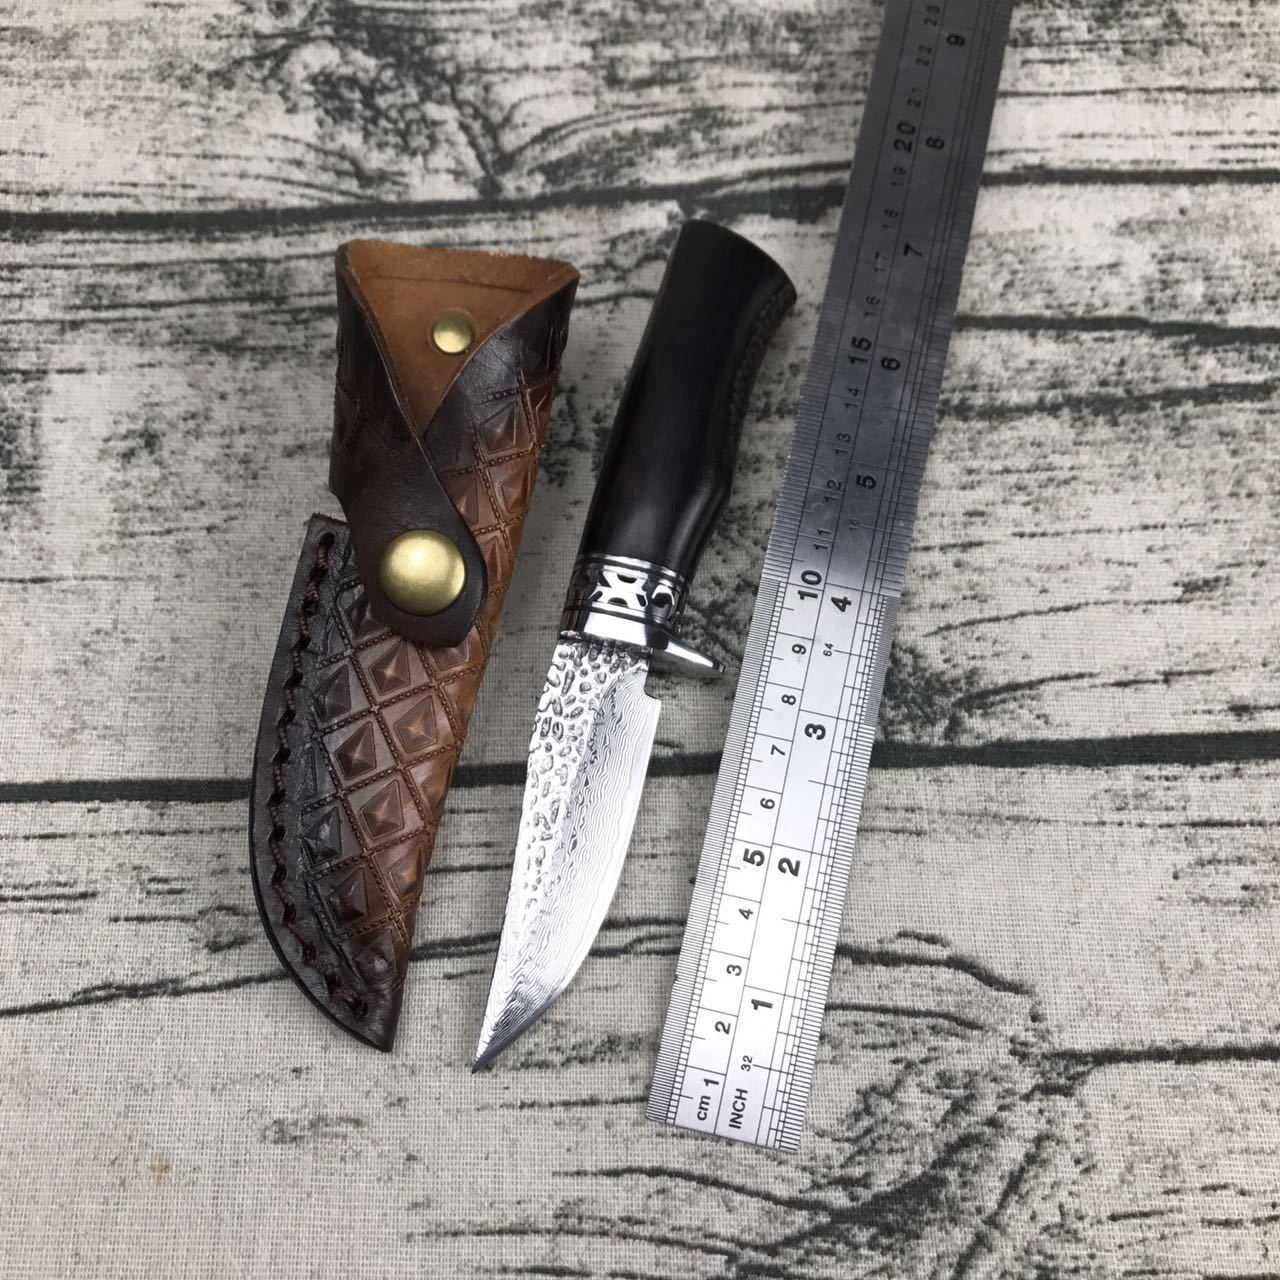 Swayboo damascus steel VG10 small hunting knife damask pattern fixed blade knife survival hunting tool ebony wood handle raindrops figure damascus pattern steel plate knife blade material produce diy tools non heat treatment non pickling